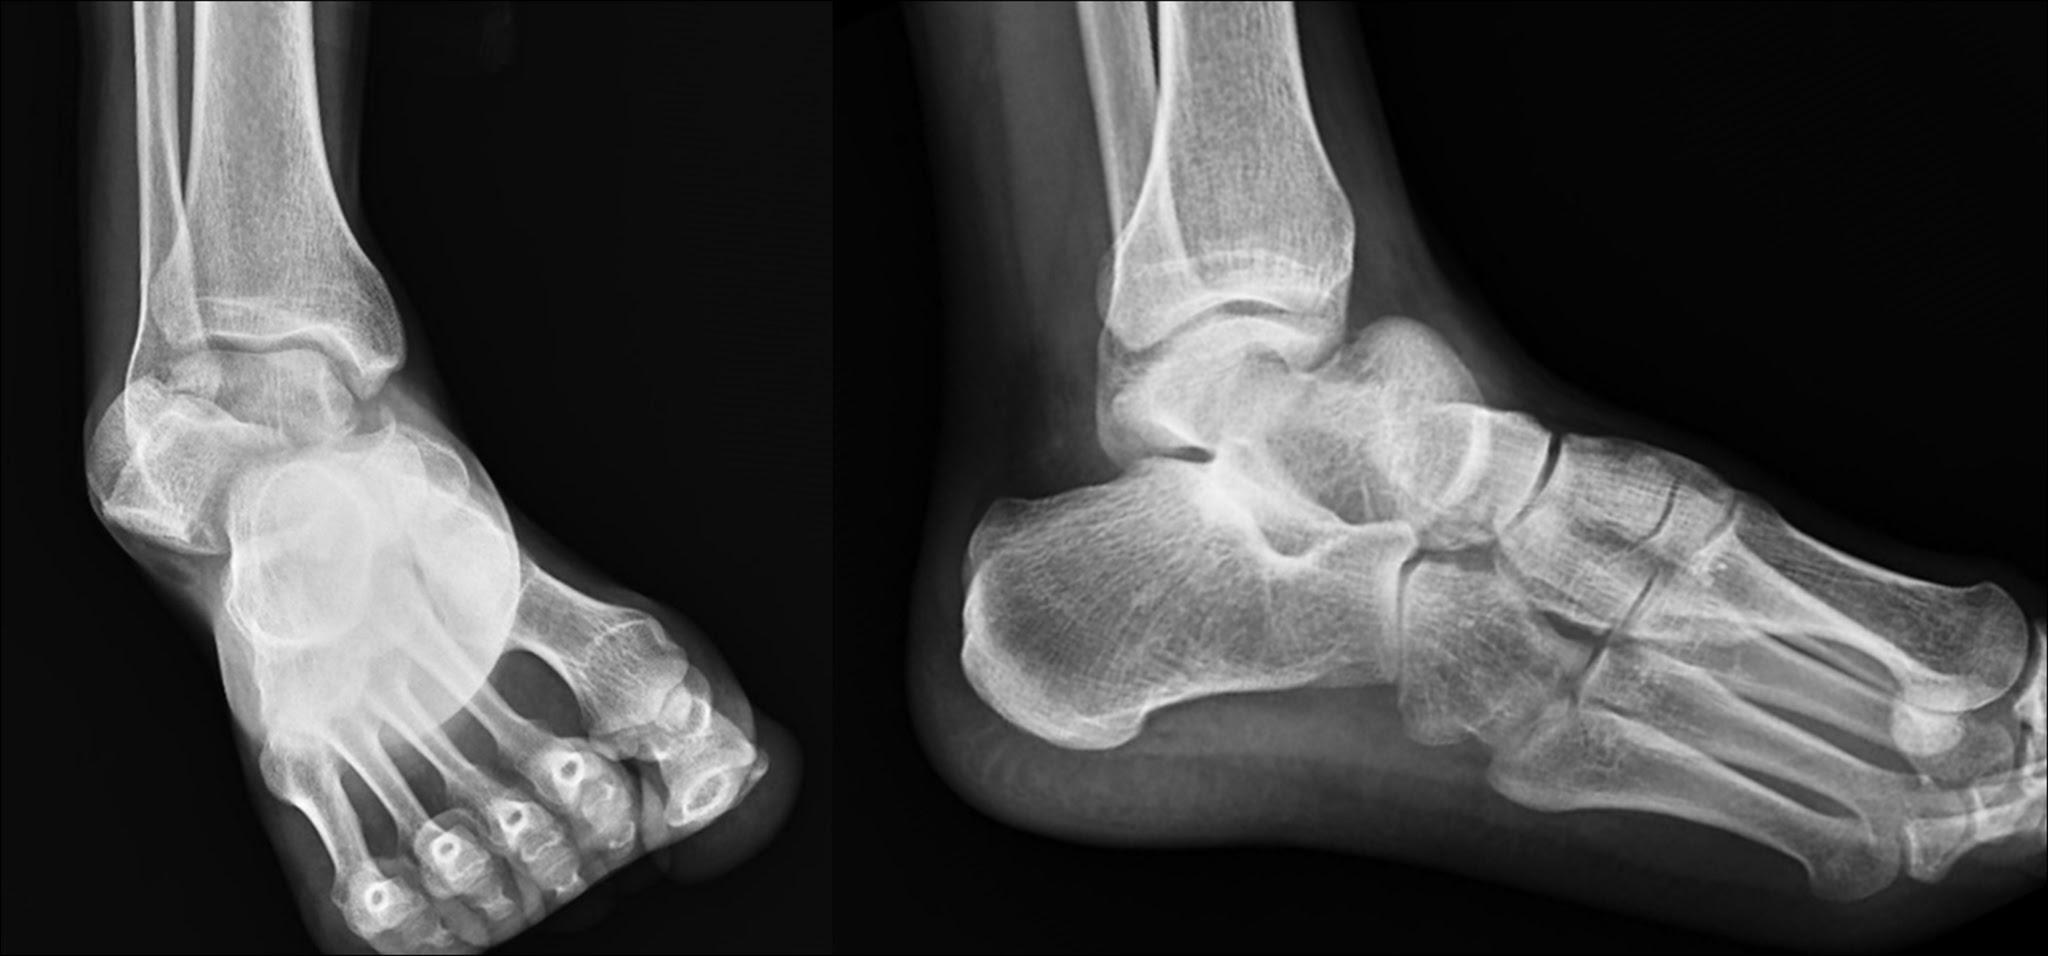 Subtalar dislocation | The Foot and Ankle Online Journal